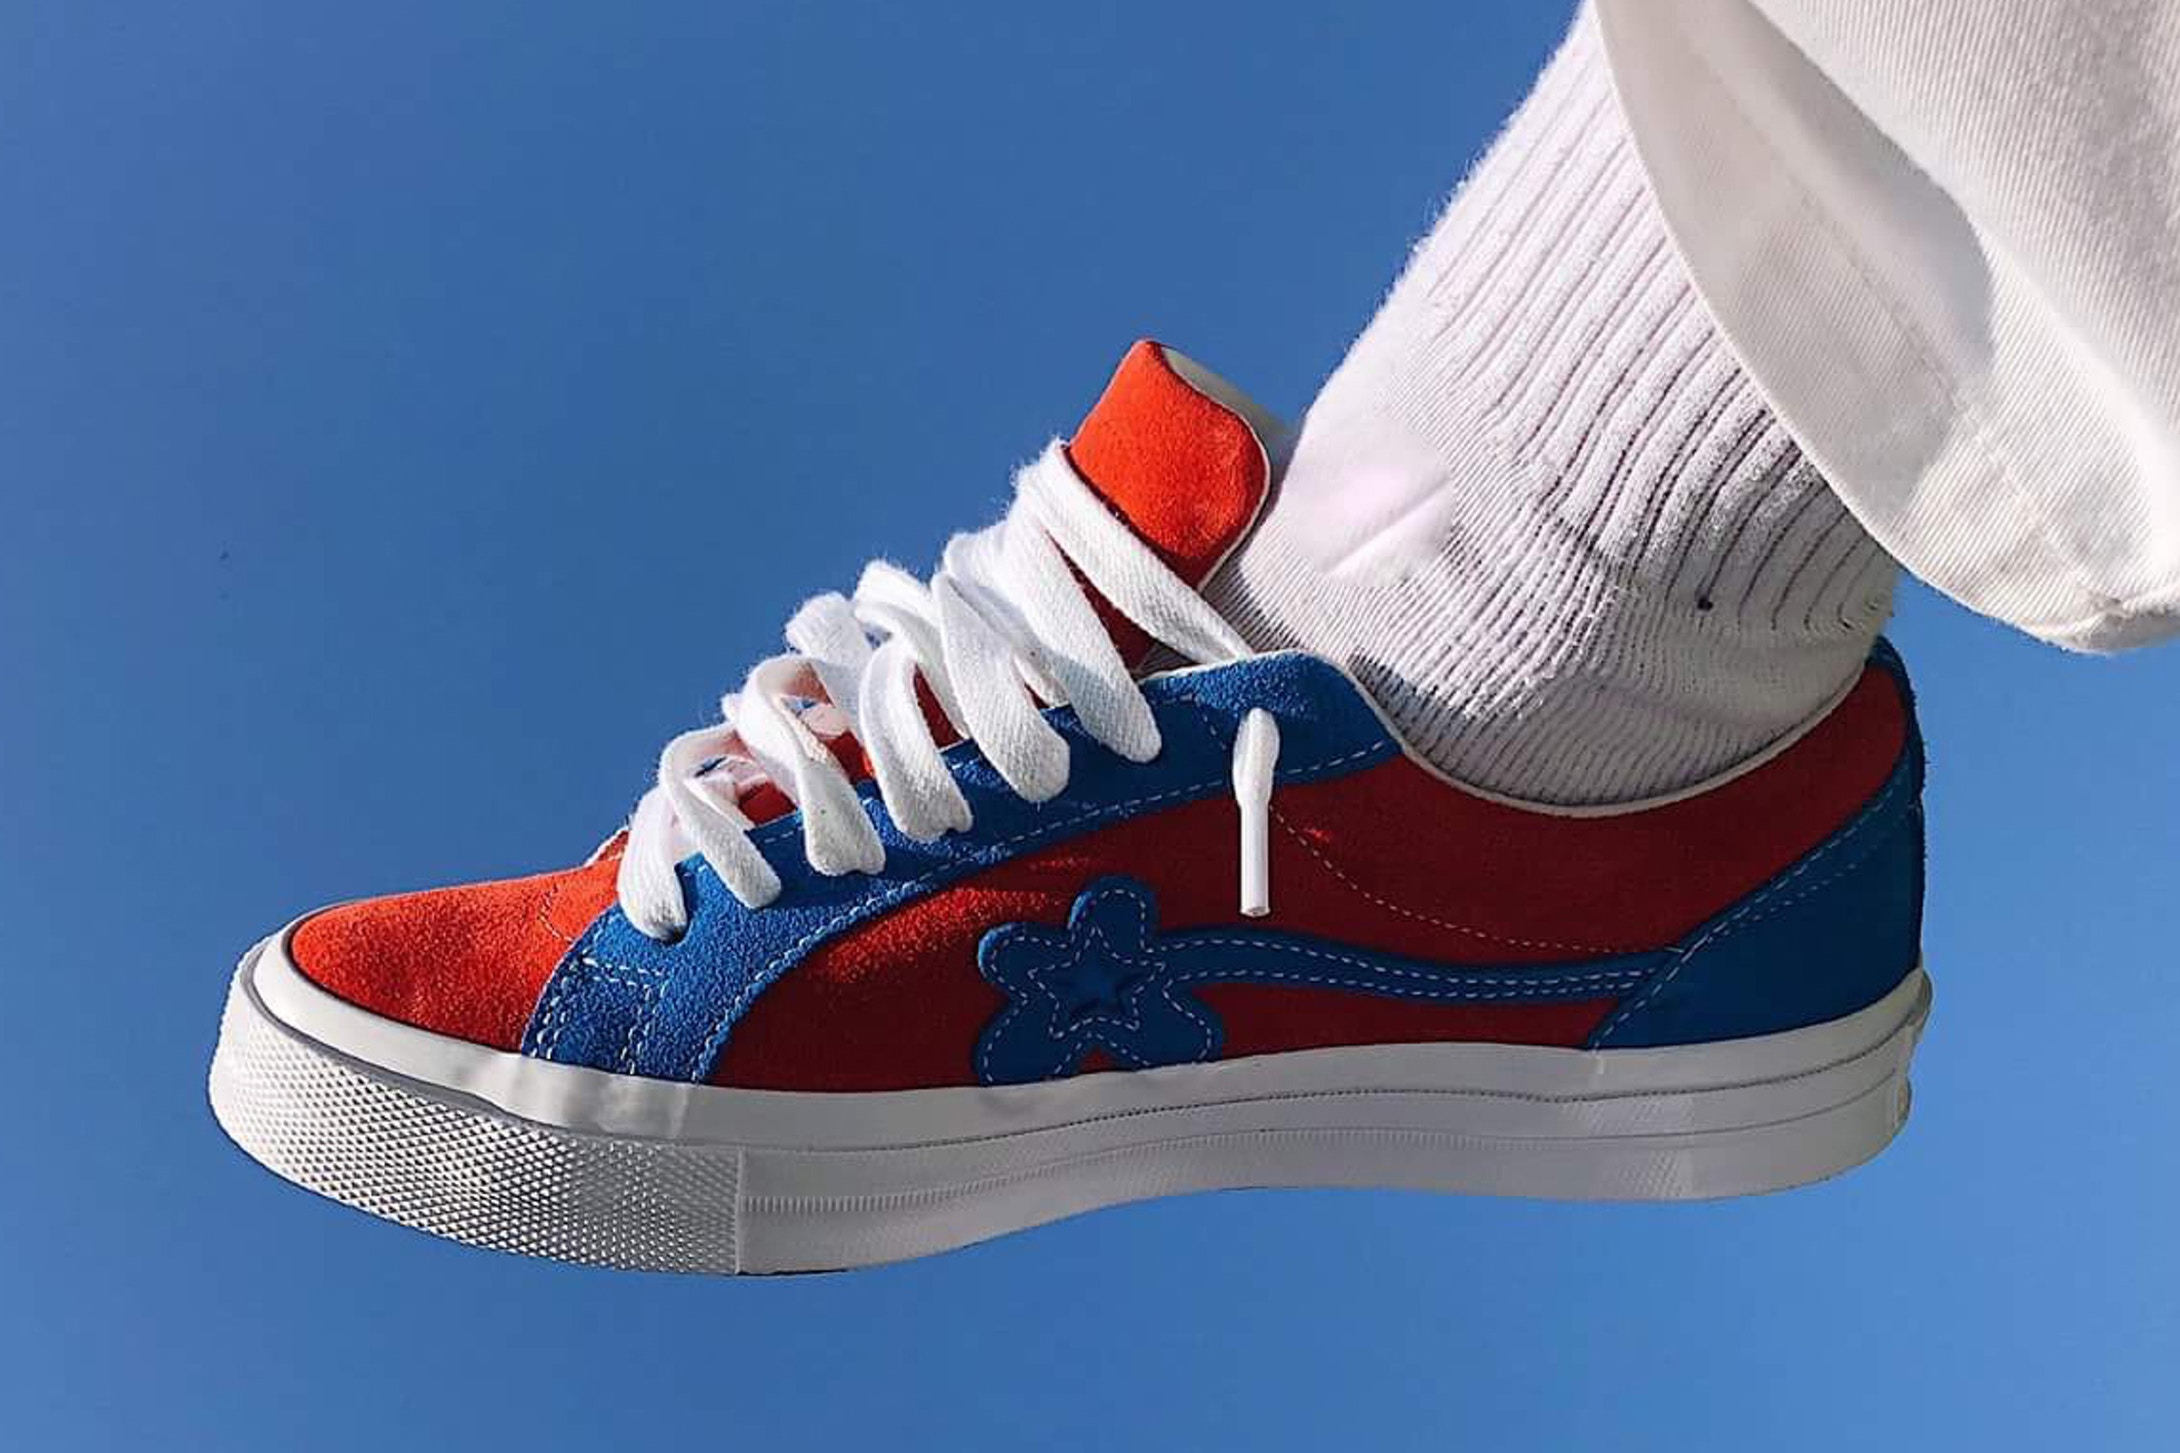 Sneaker Watch: GOLF le FLEUR* In Red & Blue Colourway